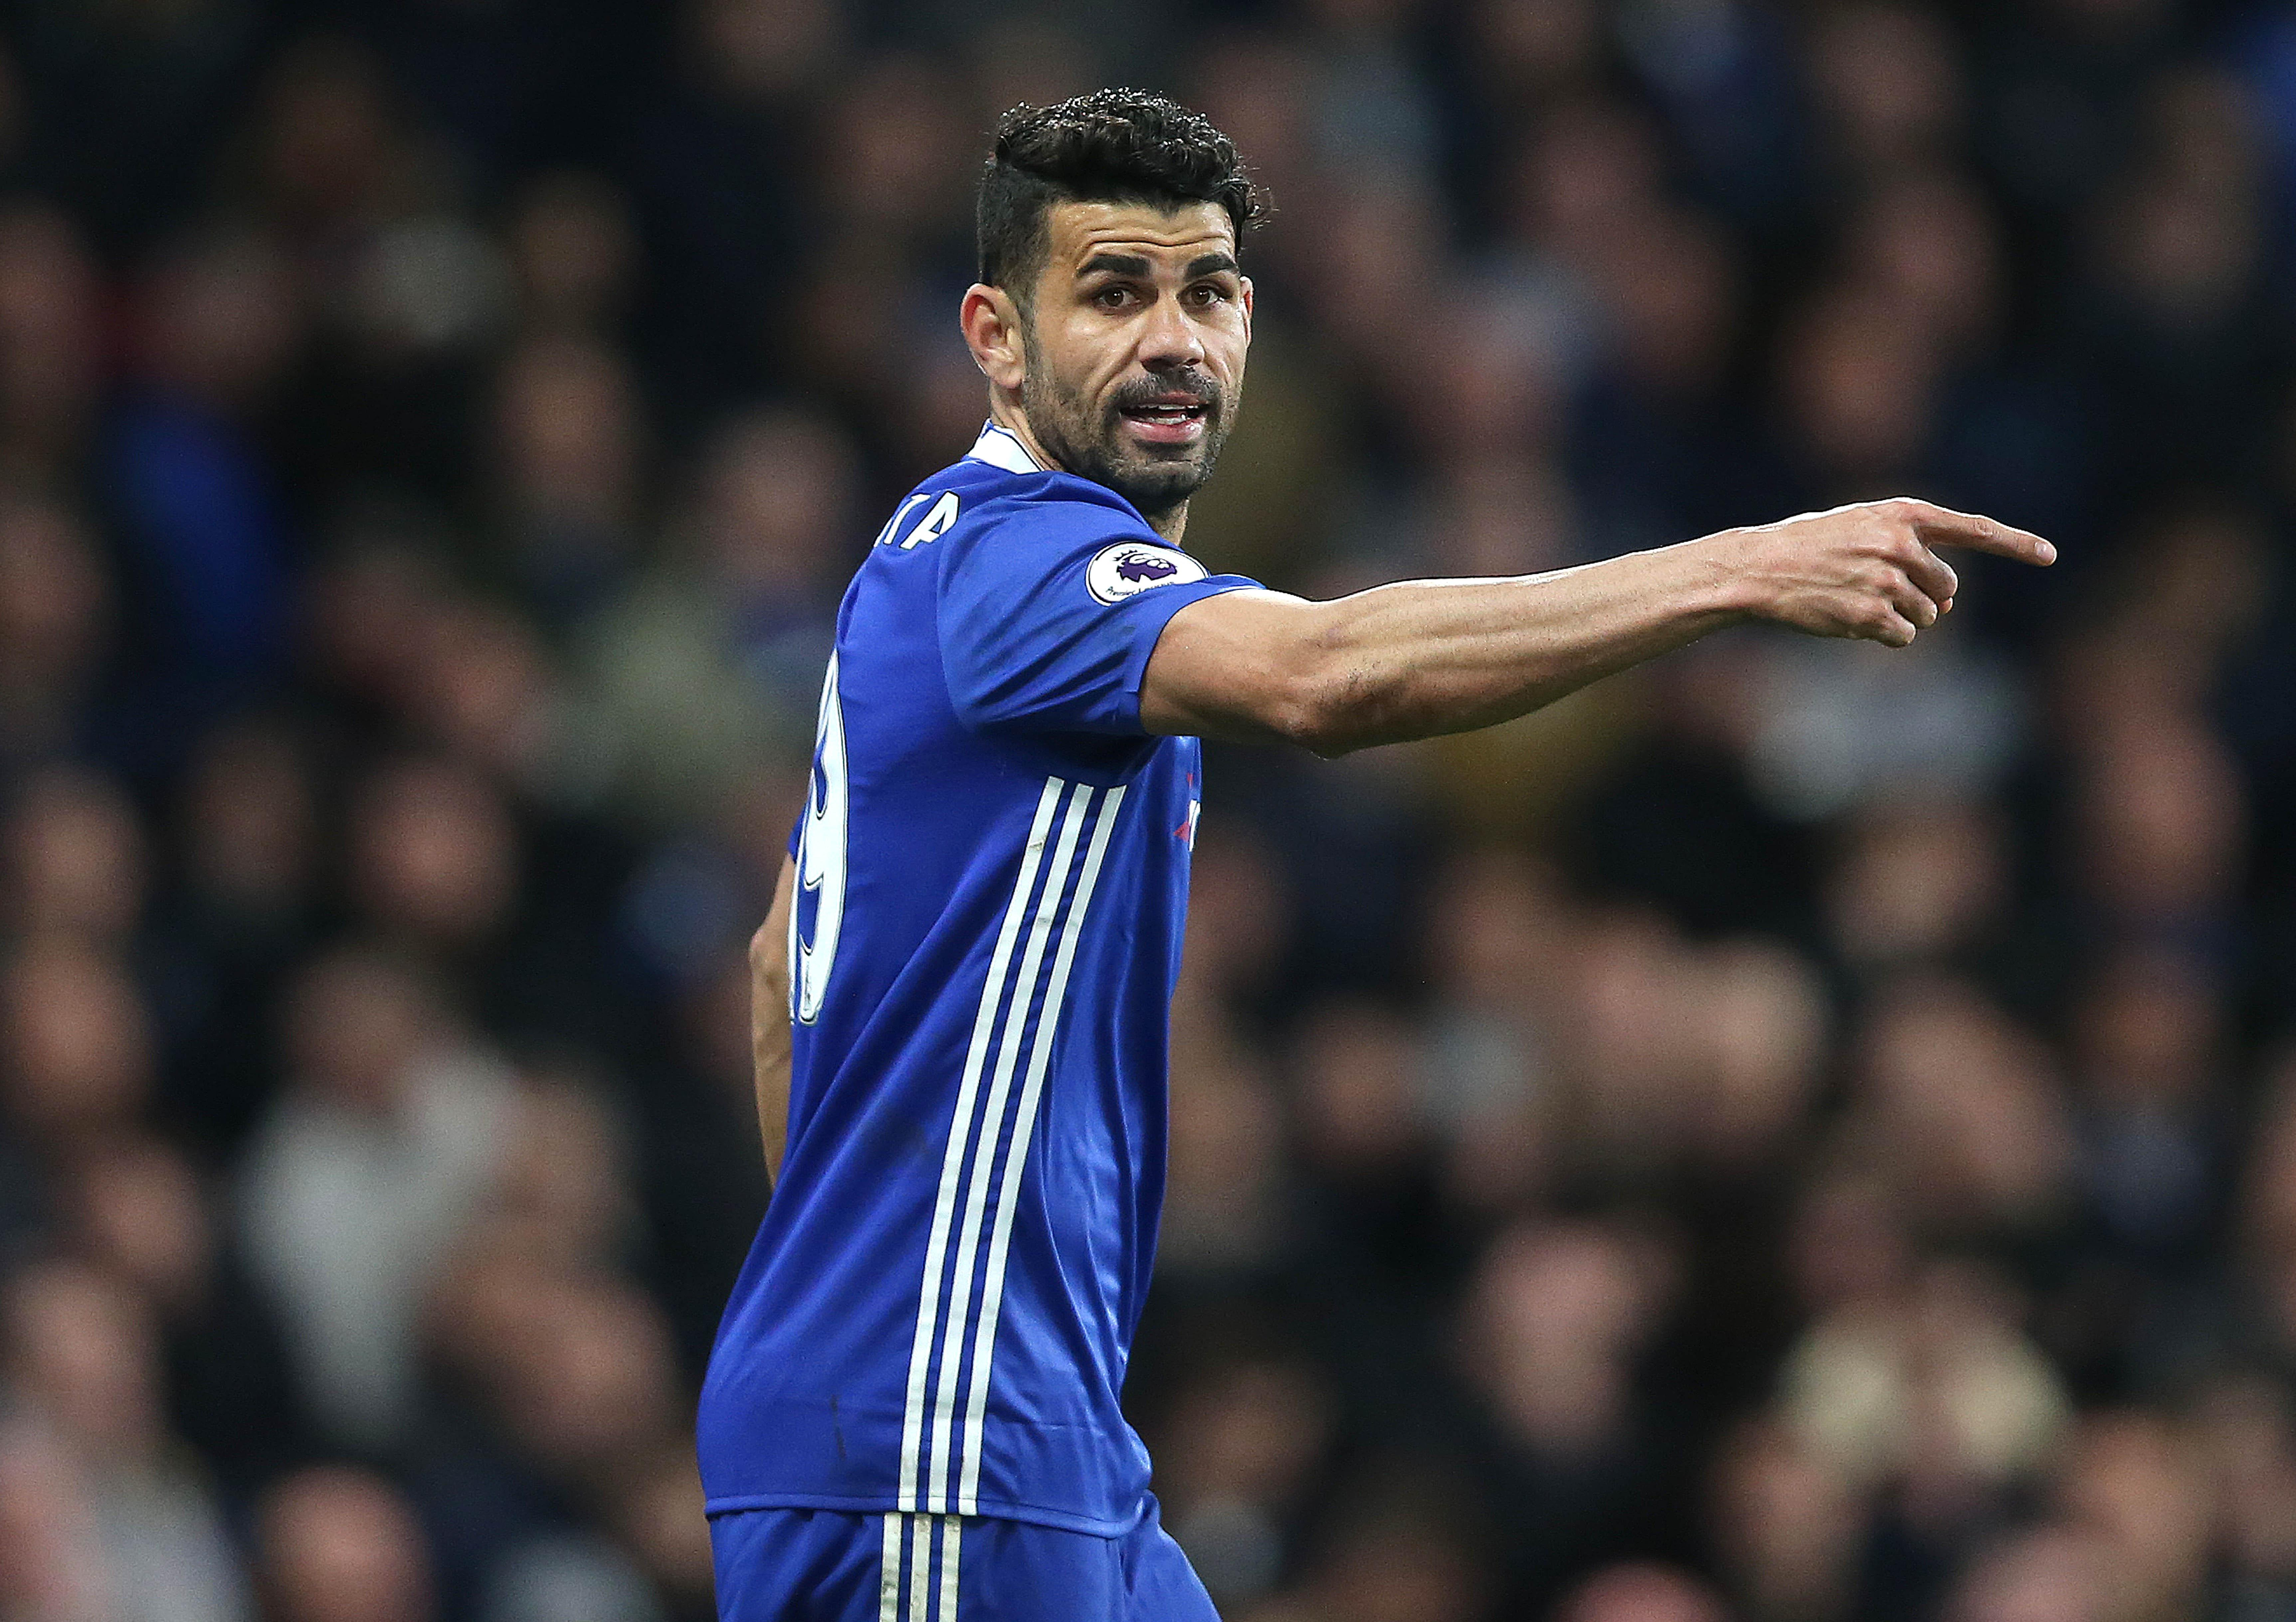 Diego Costa looks set to leave for China in the summer